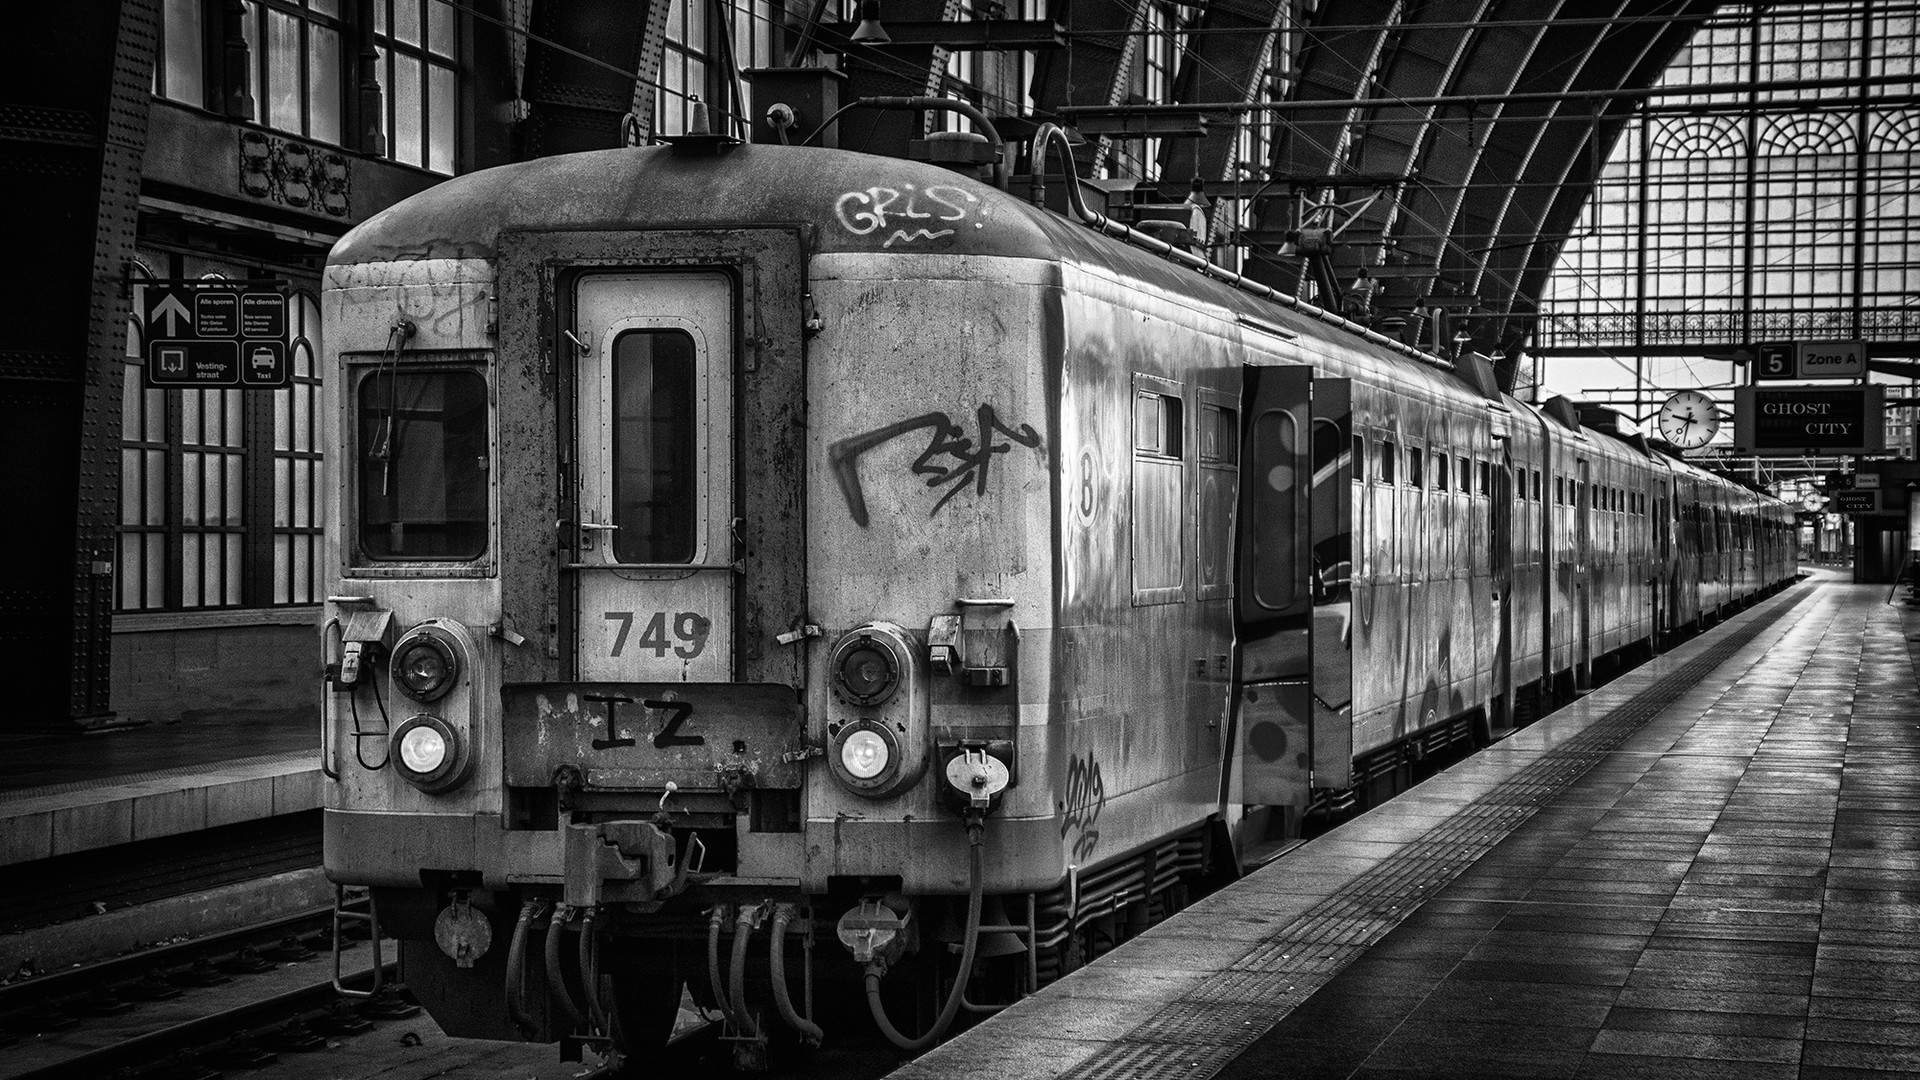 RAY_GHOST_TRAIN_TO_GHOST_CITY_DSC_2509_